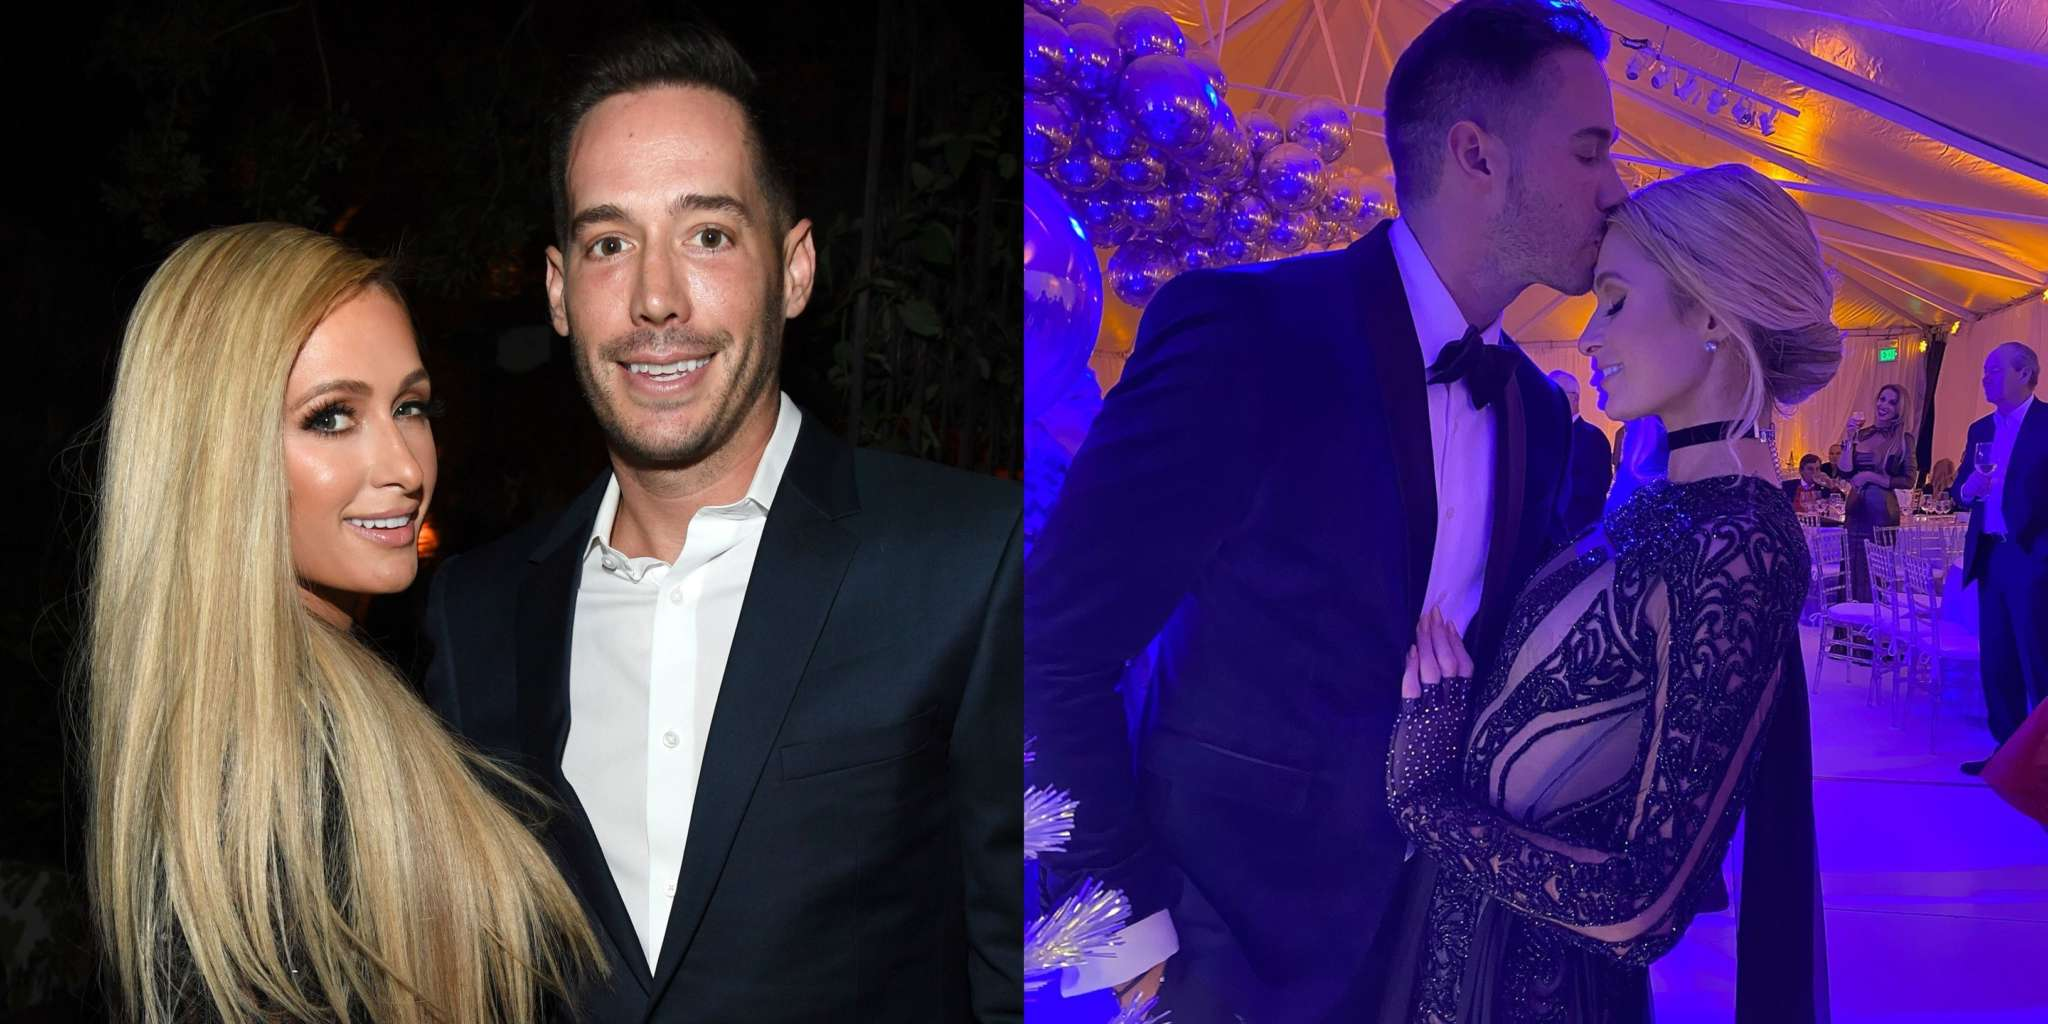 Paris Hilton Gushes Over Her 'Twin Flame' Carter Reum On Their 1-Year Anniversary!